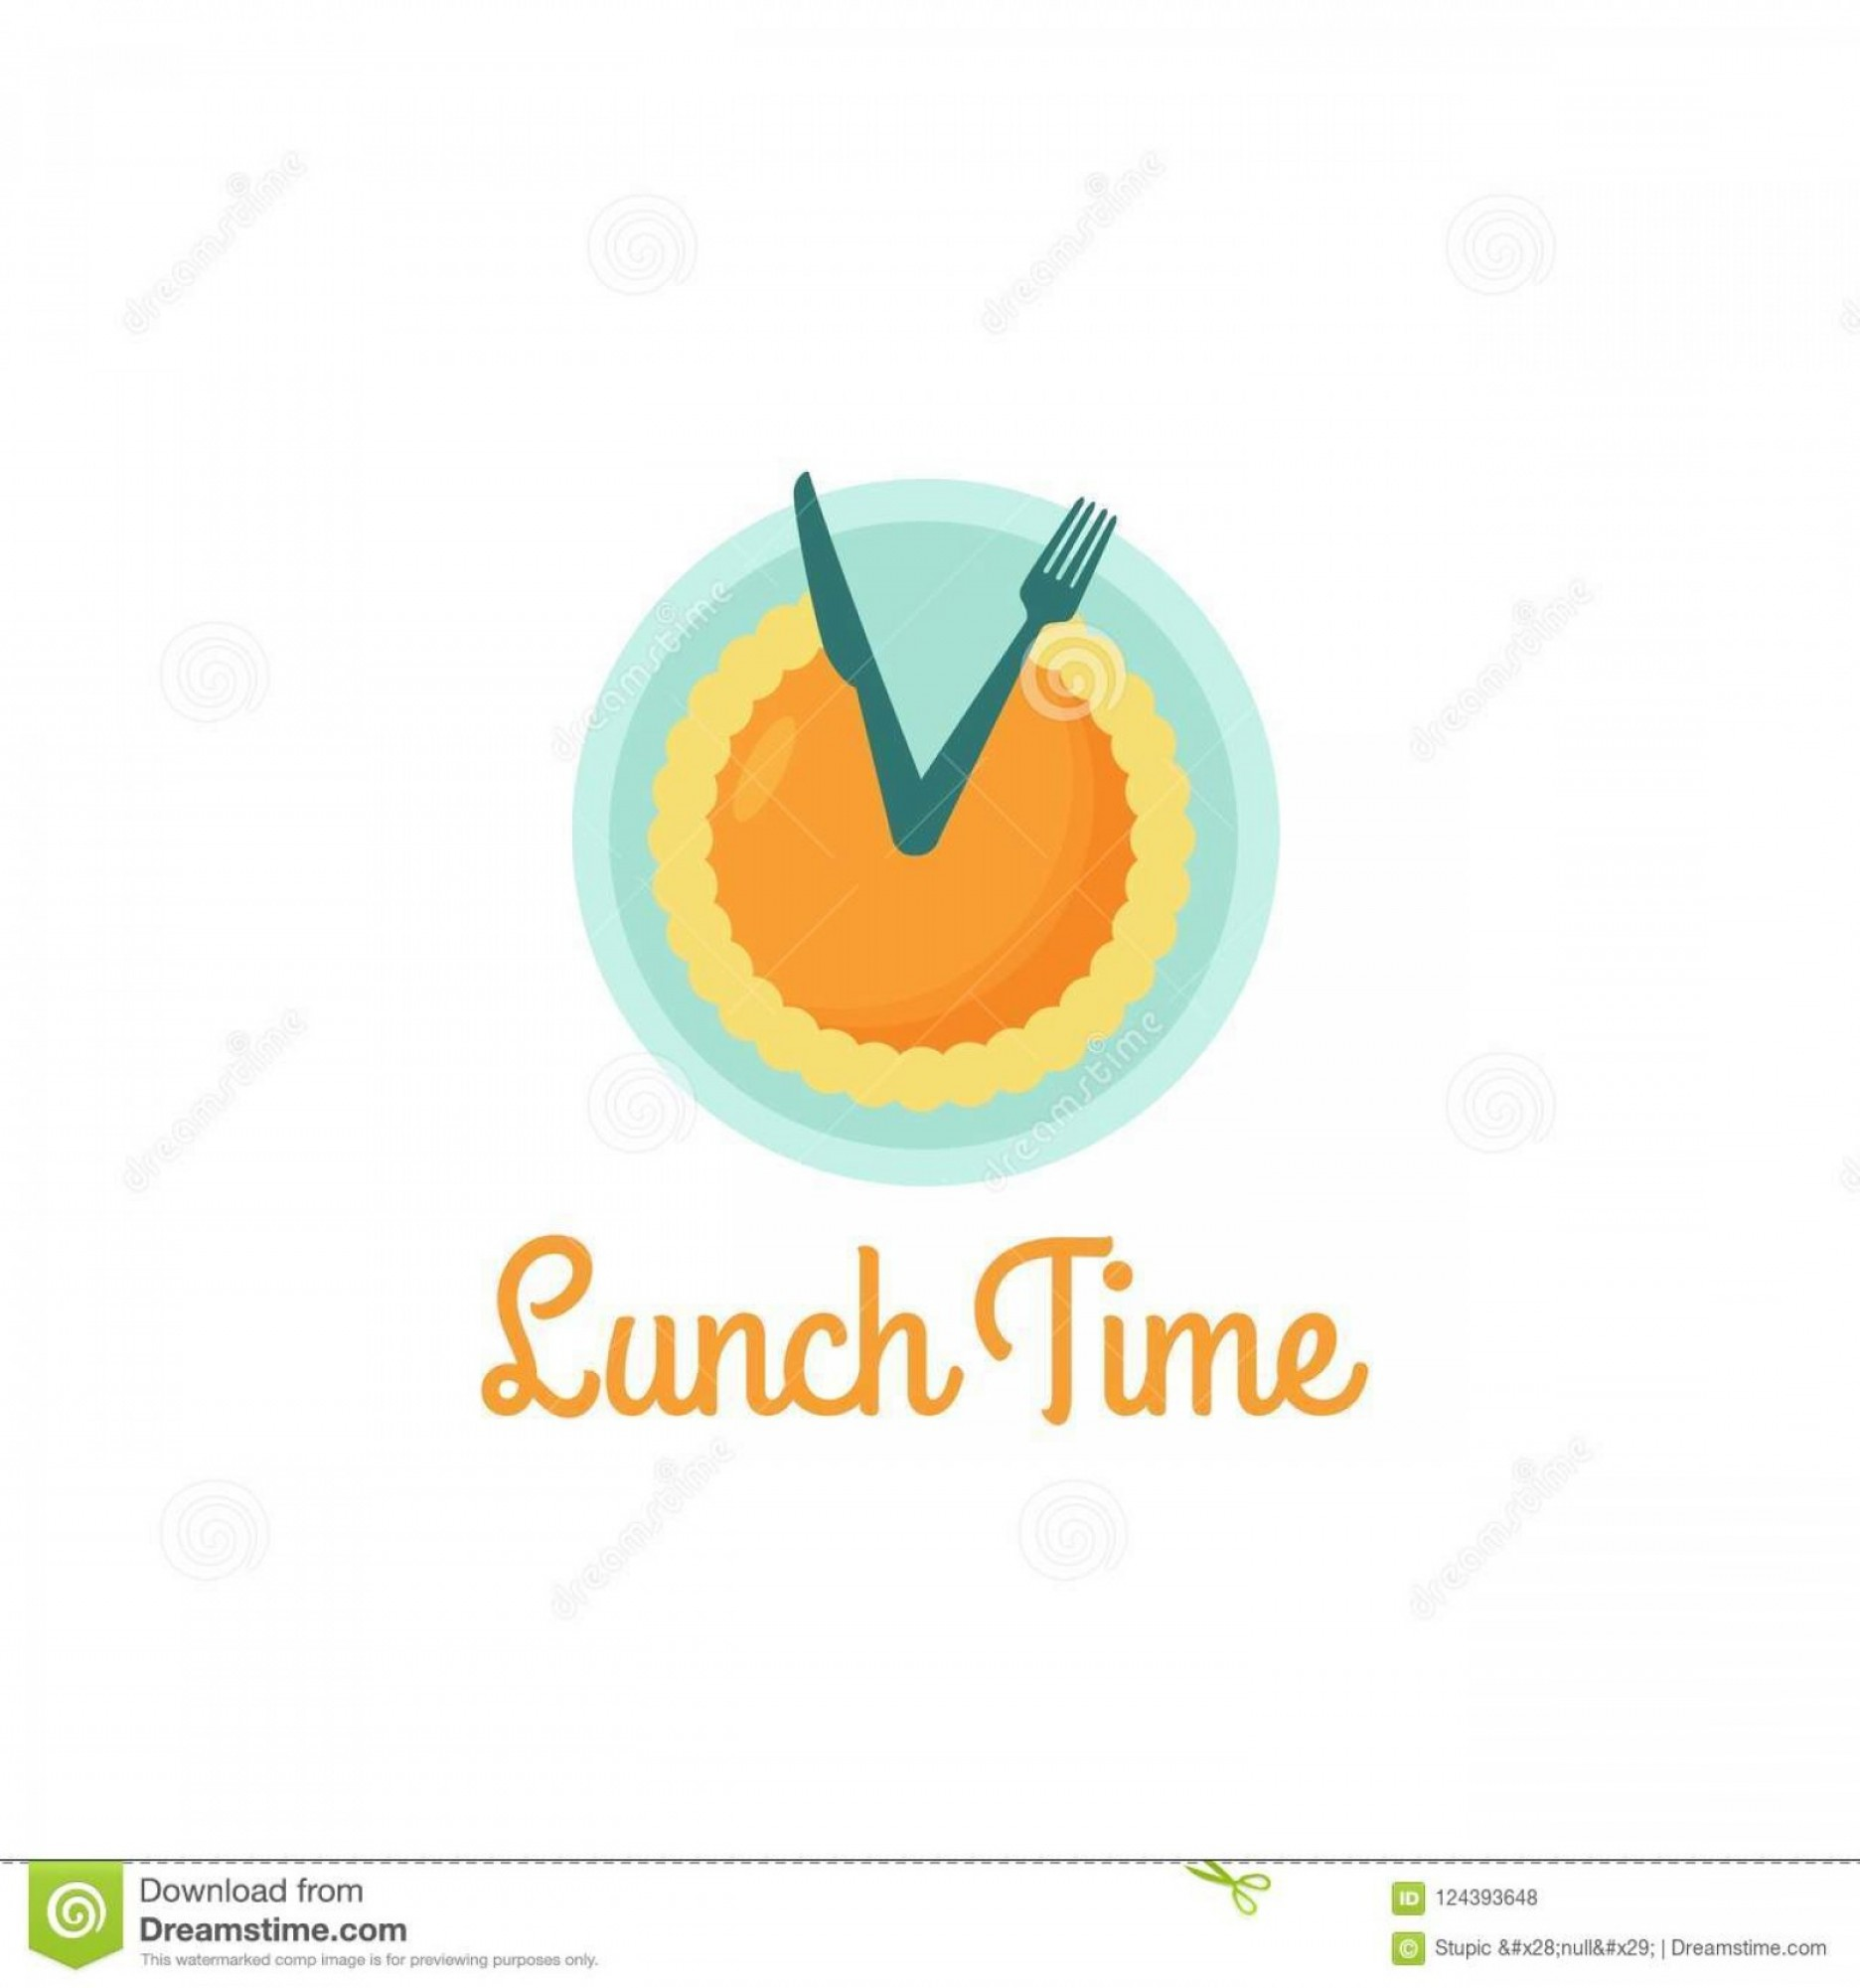 Logo Design Vector: Creative Lunch Time Logo Design Vector Art Logo Creative Clever Lunch Time Logo Design Various Used Purposed Just Image